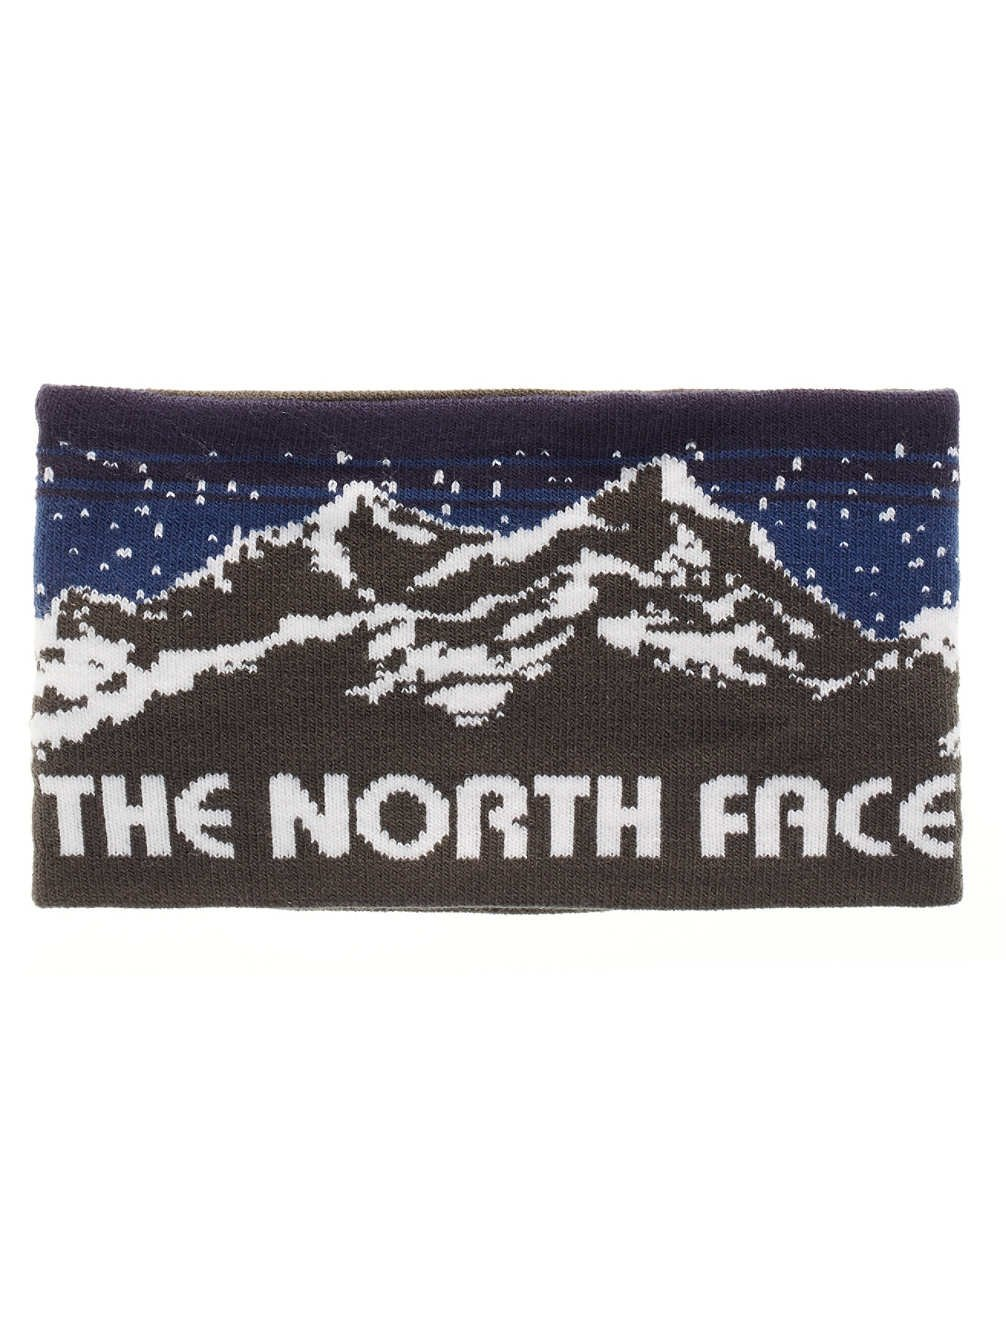 North Face chizzler Headband – Nastro Unisex, Taglia OS, Unisex Adulto, Chizzler Headband, Grigio, OS The North Face